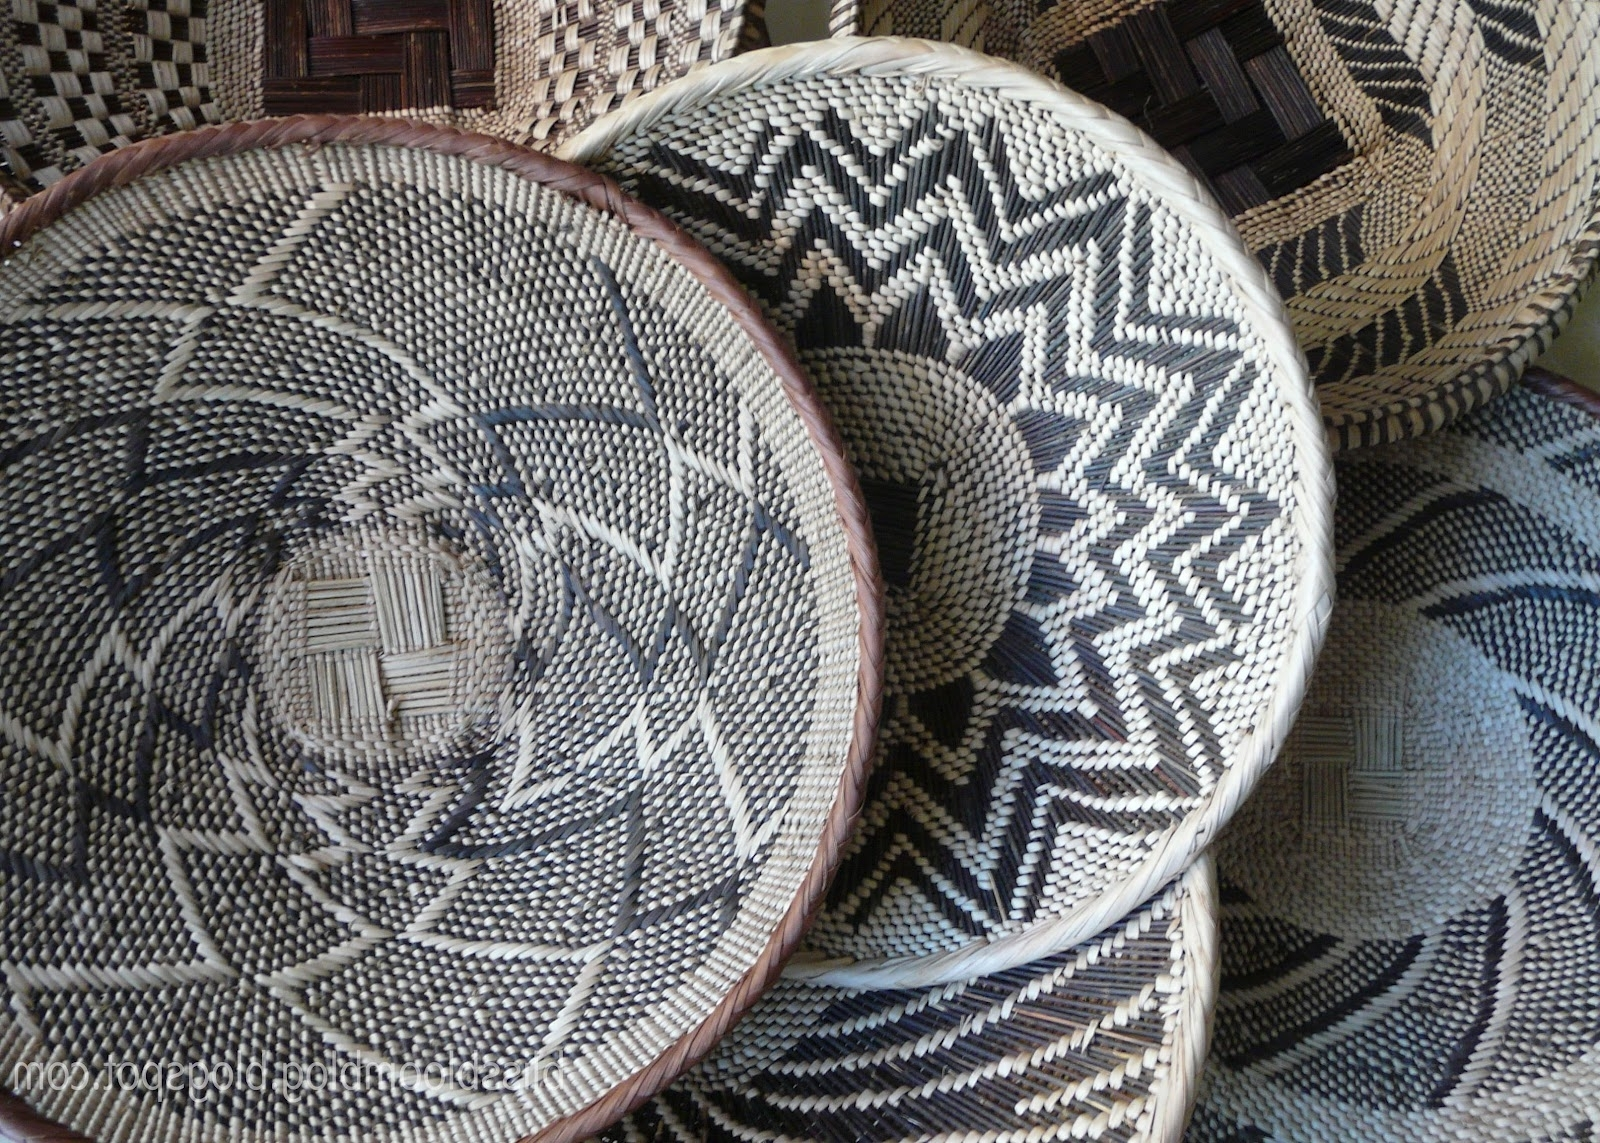 Famous Woven Basket Wall Decor – Vanity 301 In Woven Basket Wall Art (View 6 of 15)